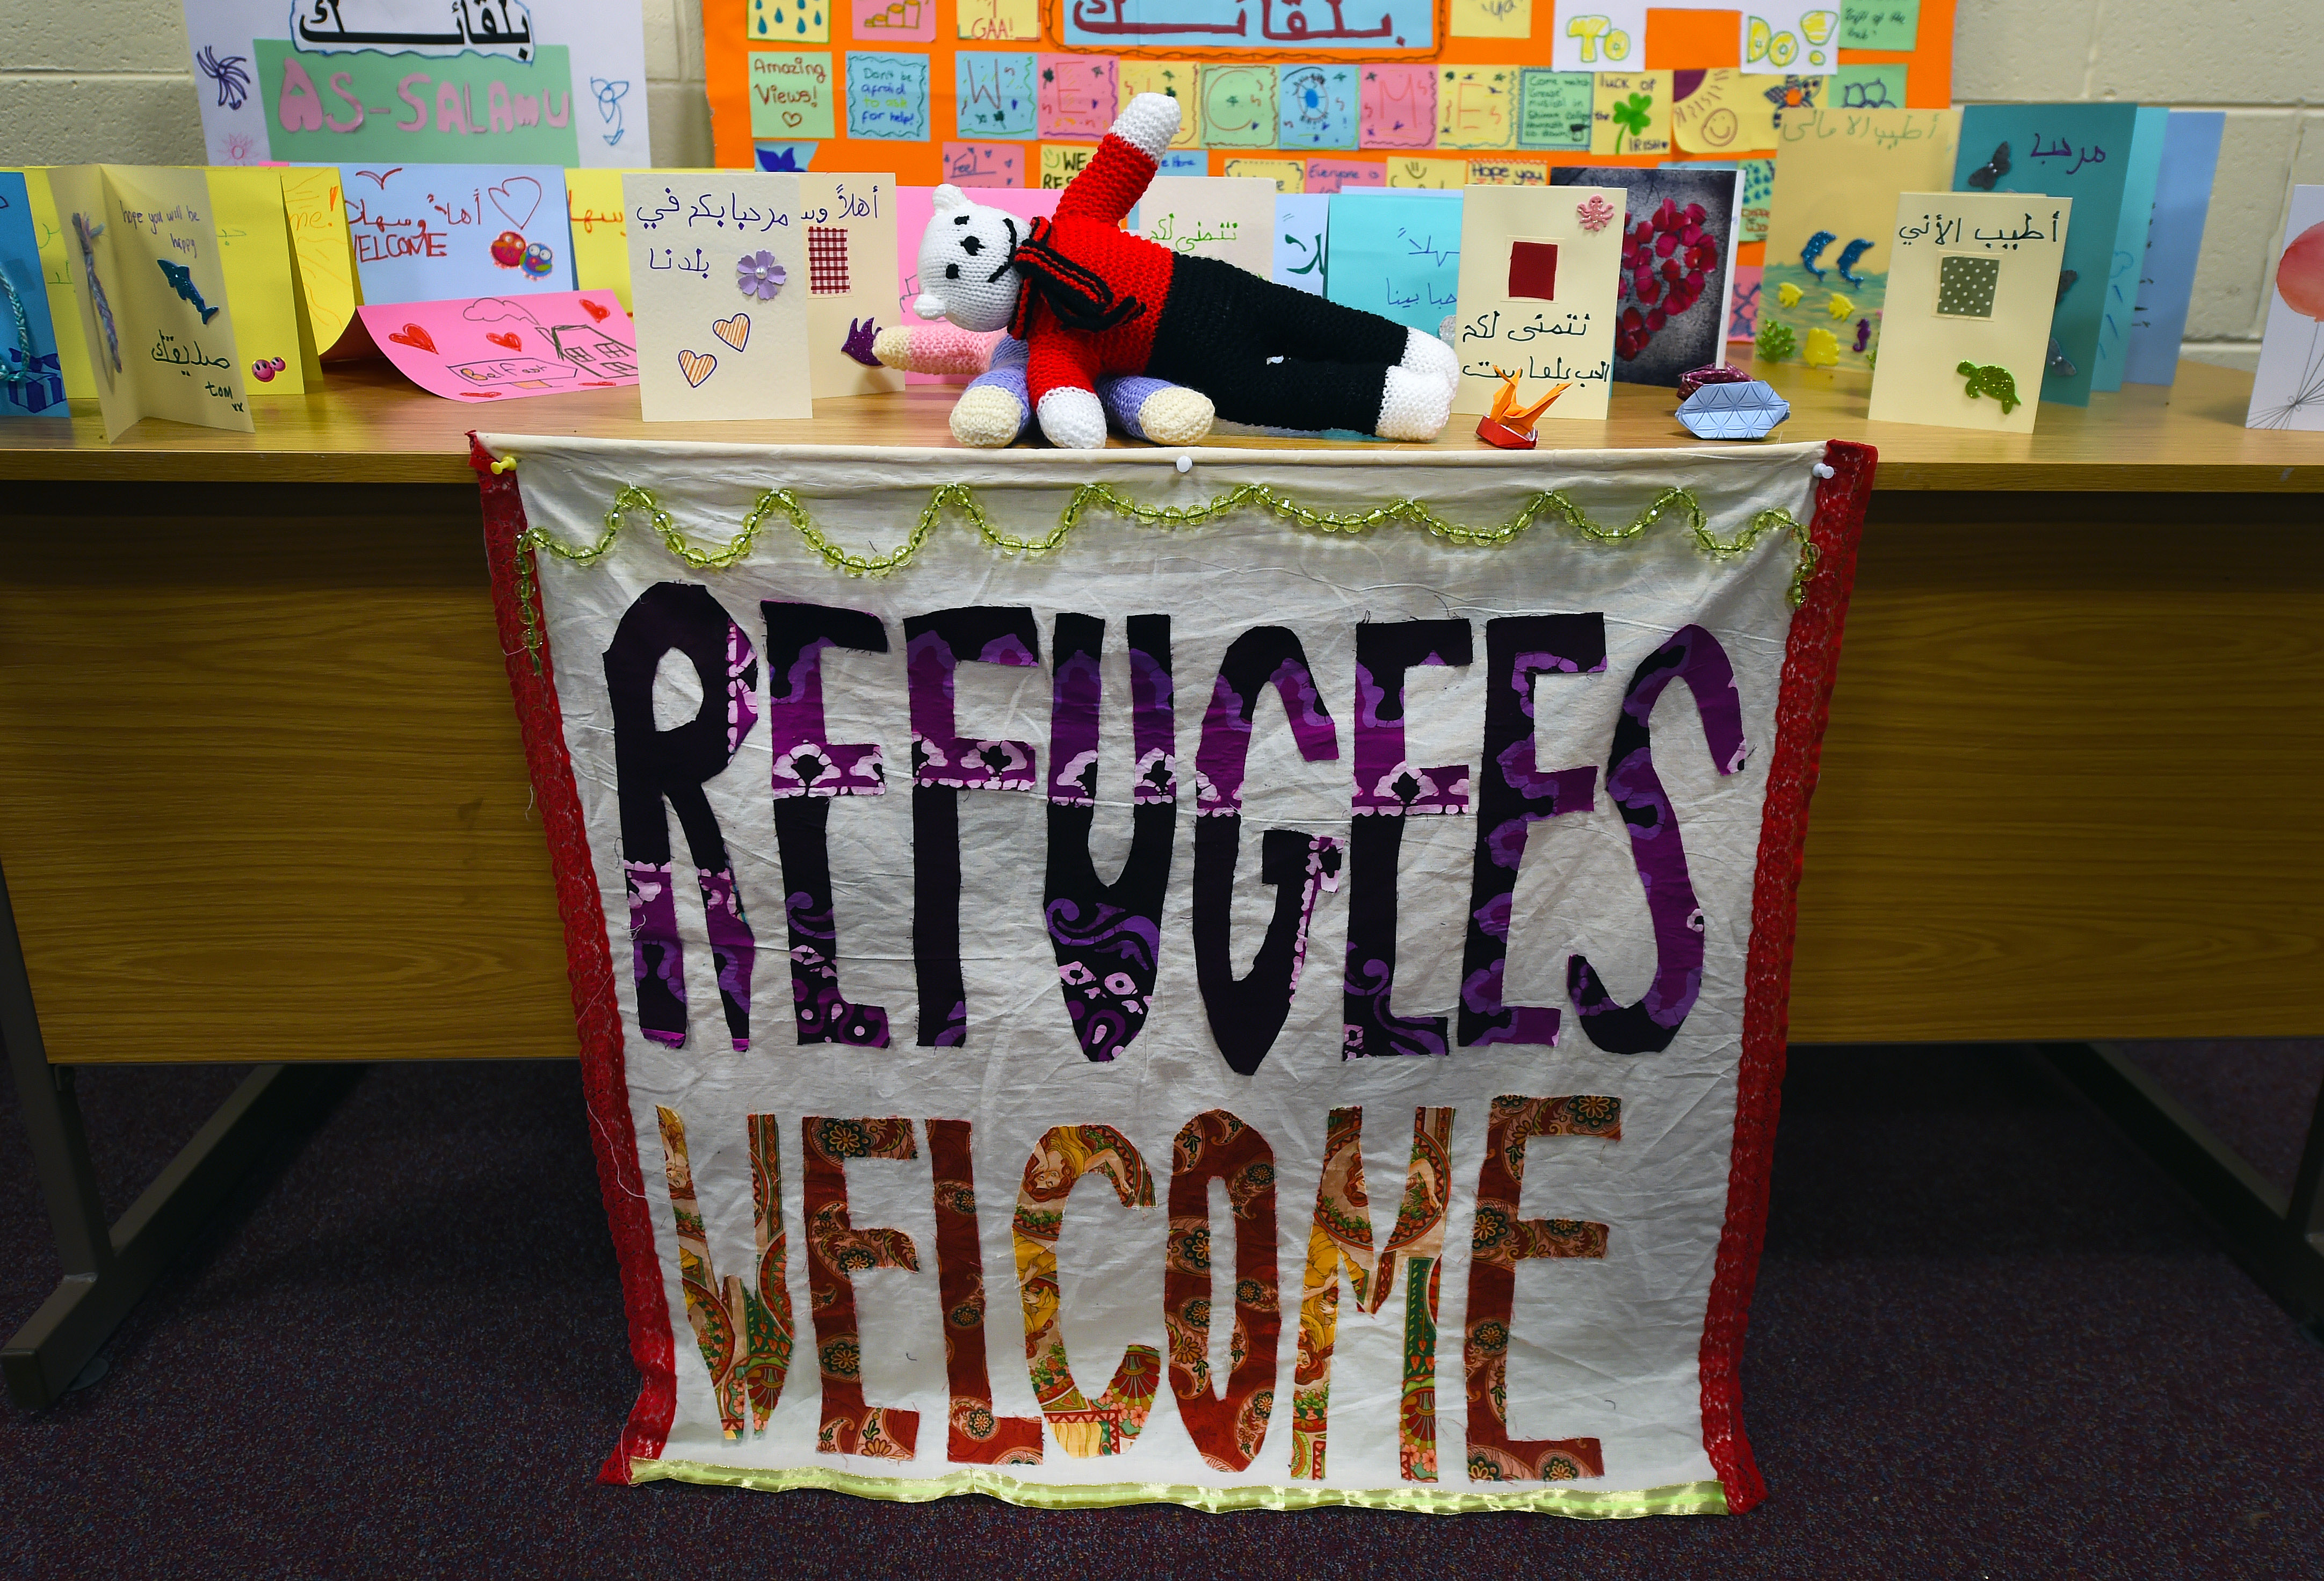 Welcoming cards and posters made by local children await Syrian refugees at an undisclosed location on December 14, 2015 in Belfast, Northern Ireland.